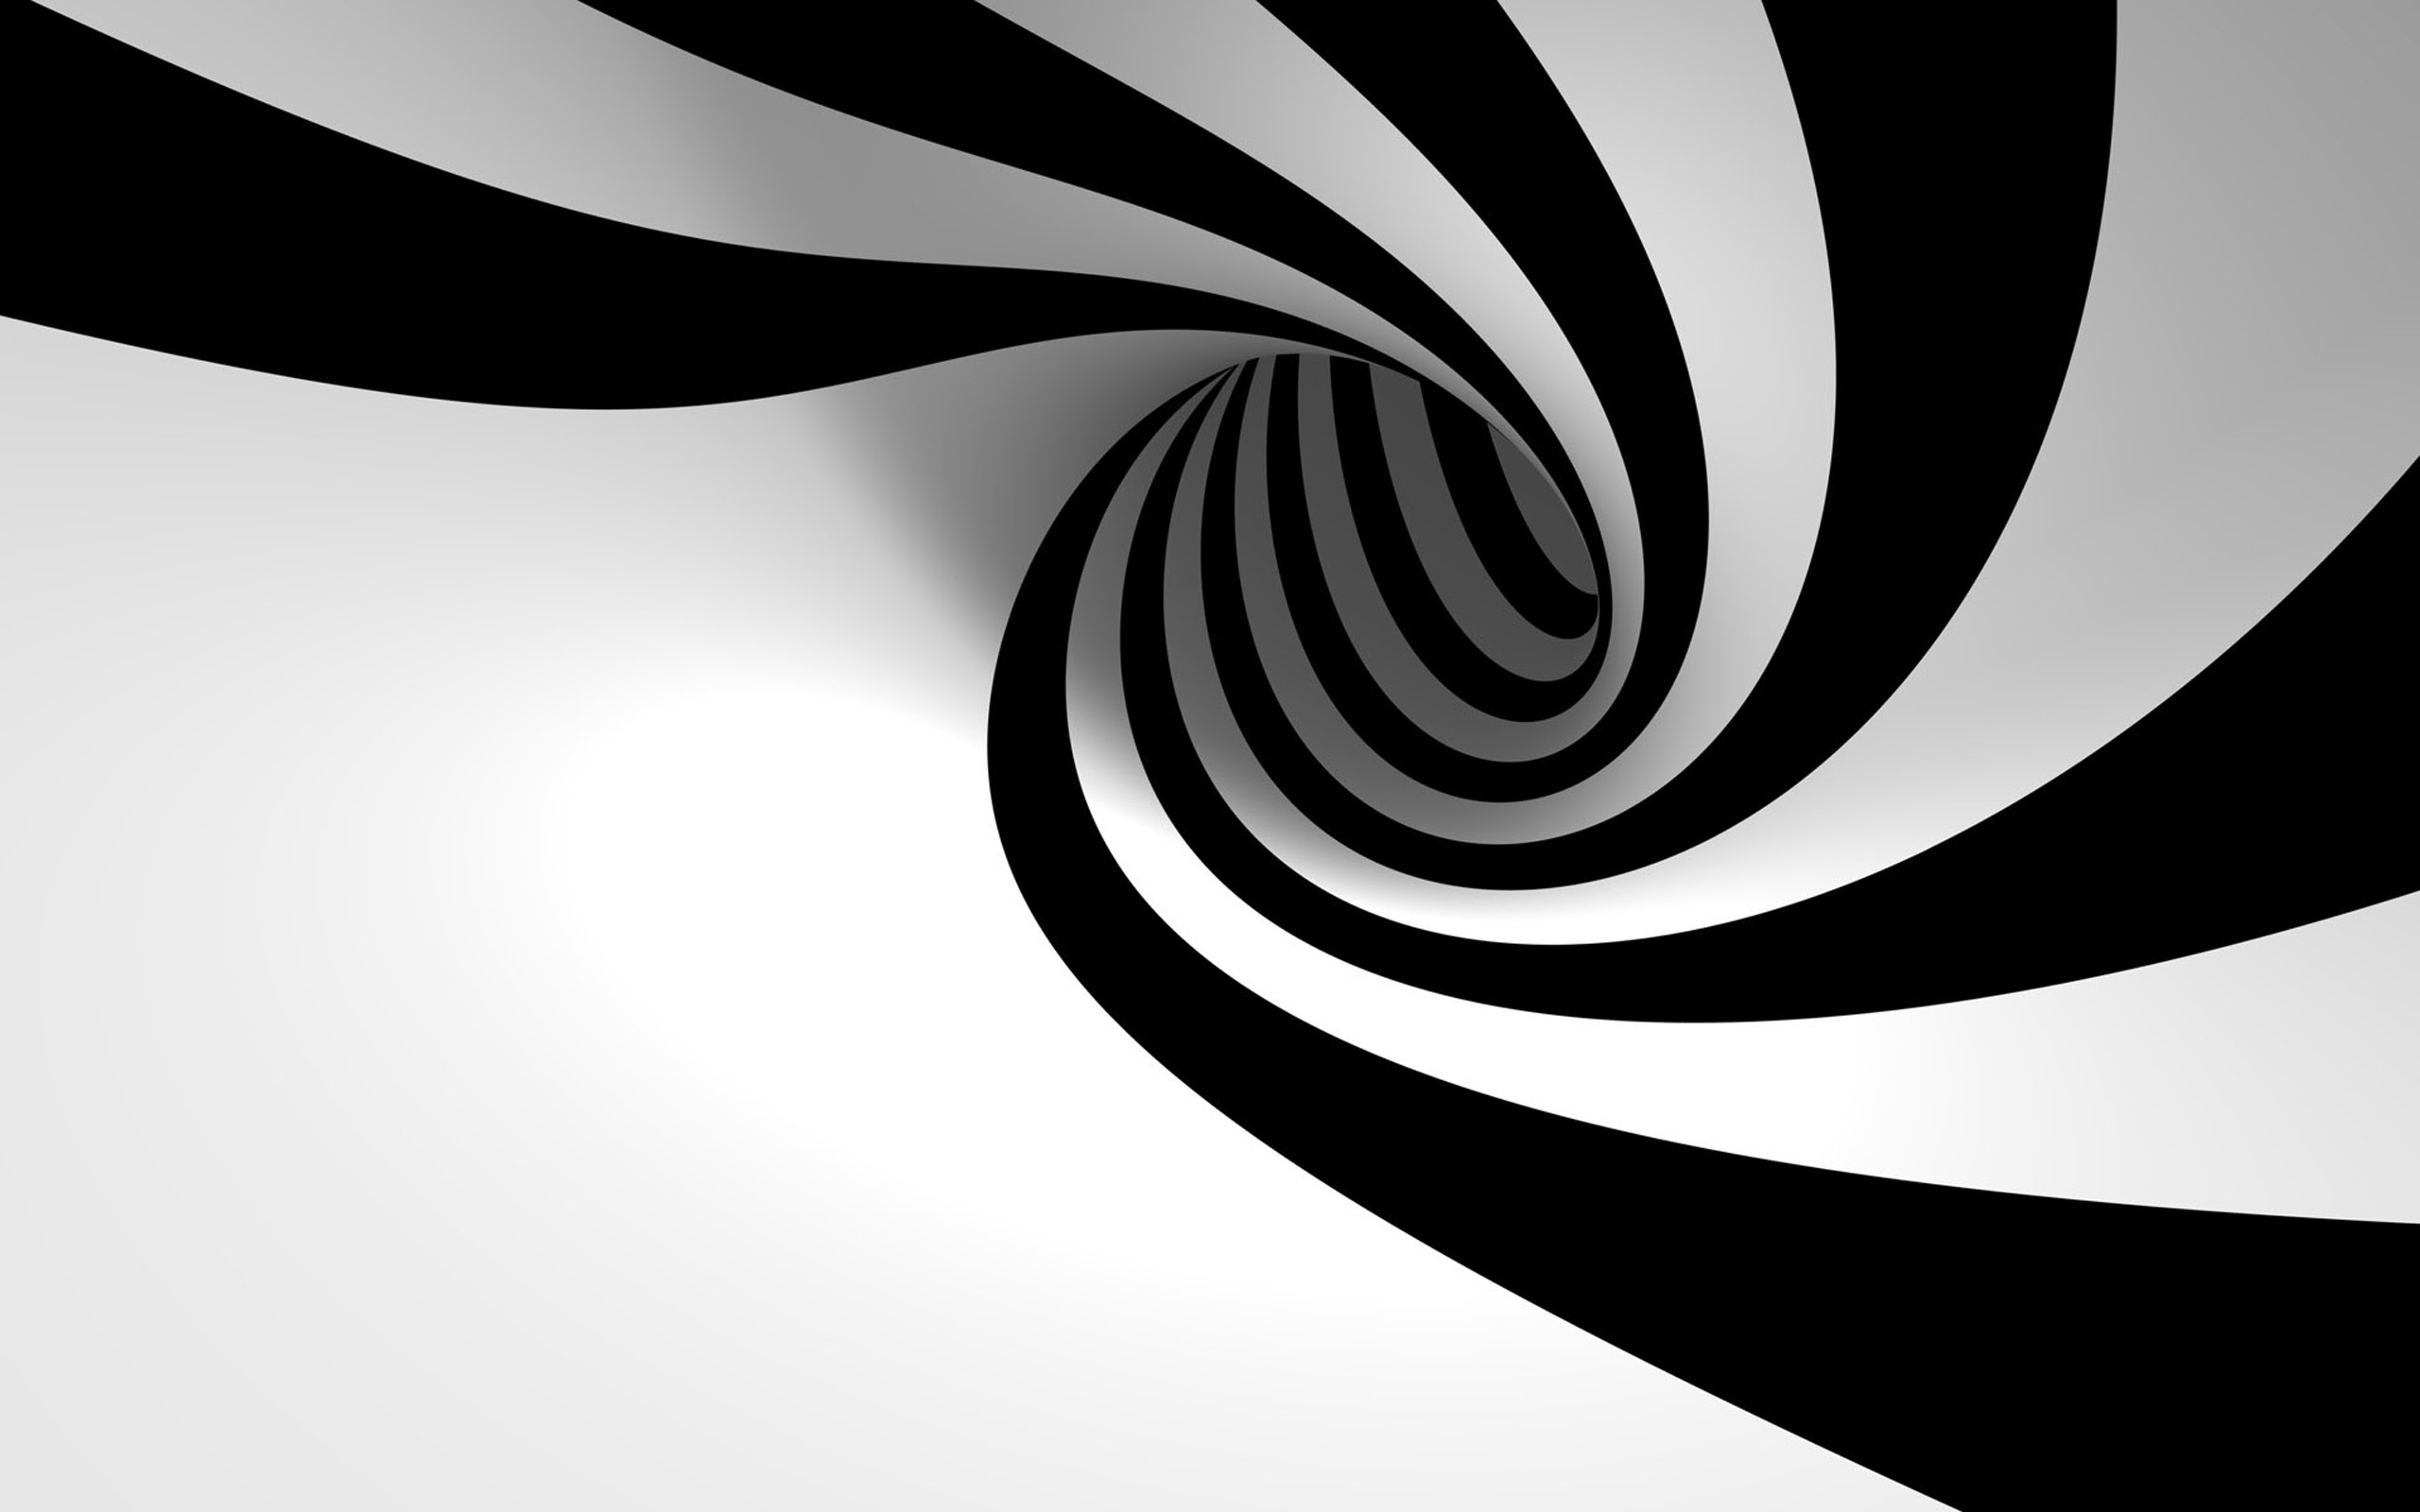 Black and white 3d wallpaper 7 background wallpaper